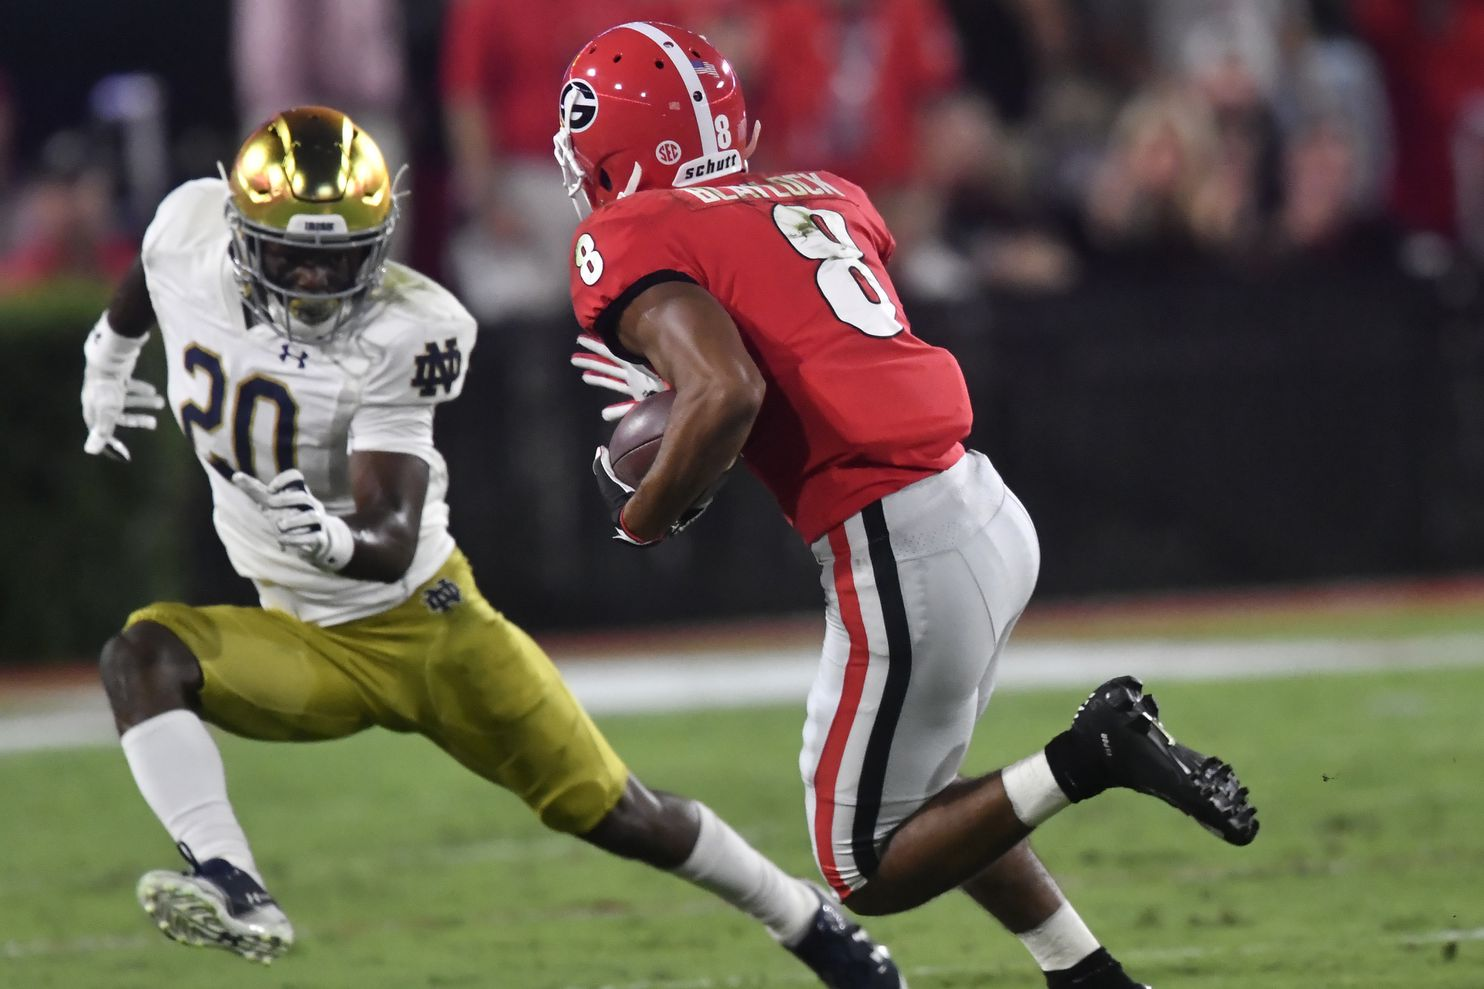 Georgia vs. Notre Dame live updates: After a Fighting Irish turnover, Bulldogs tie it